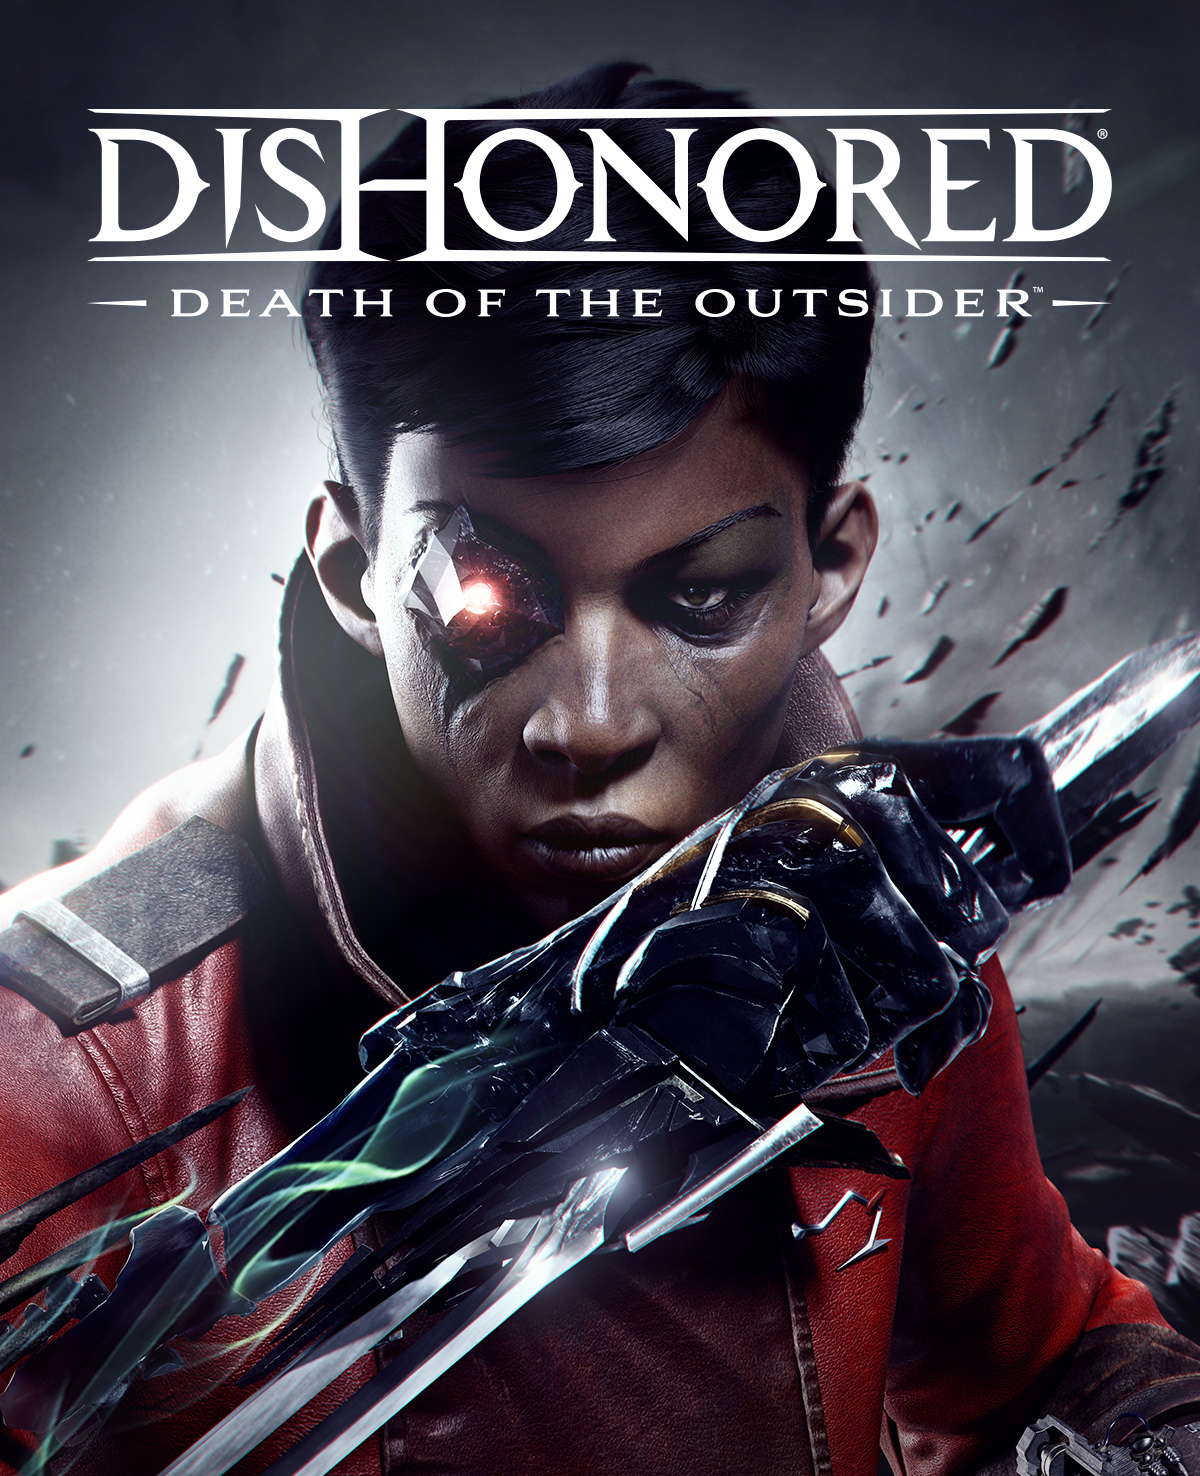 Dishonored: Death of the Outsider Release Date